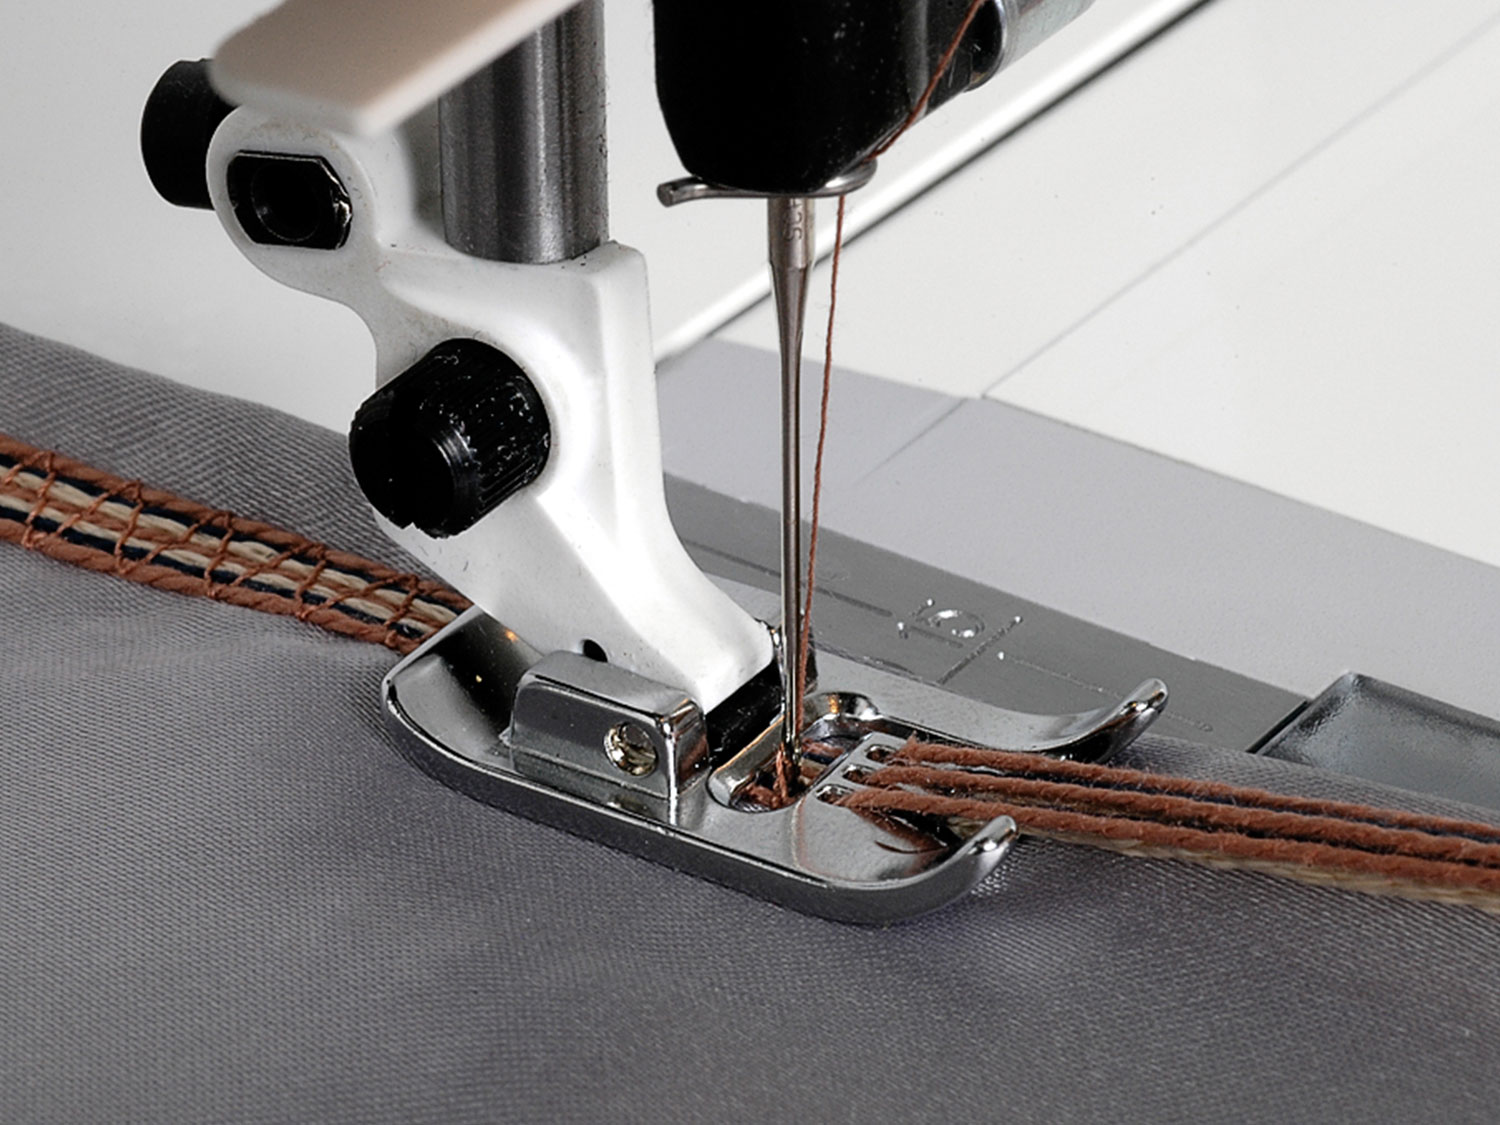 7-Hole-Cord-Foot-with-Threader